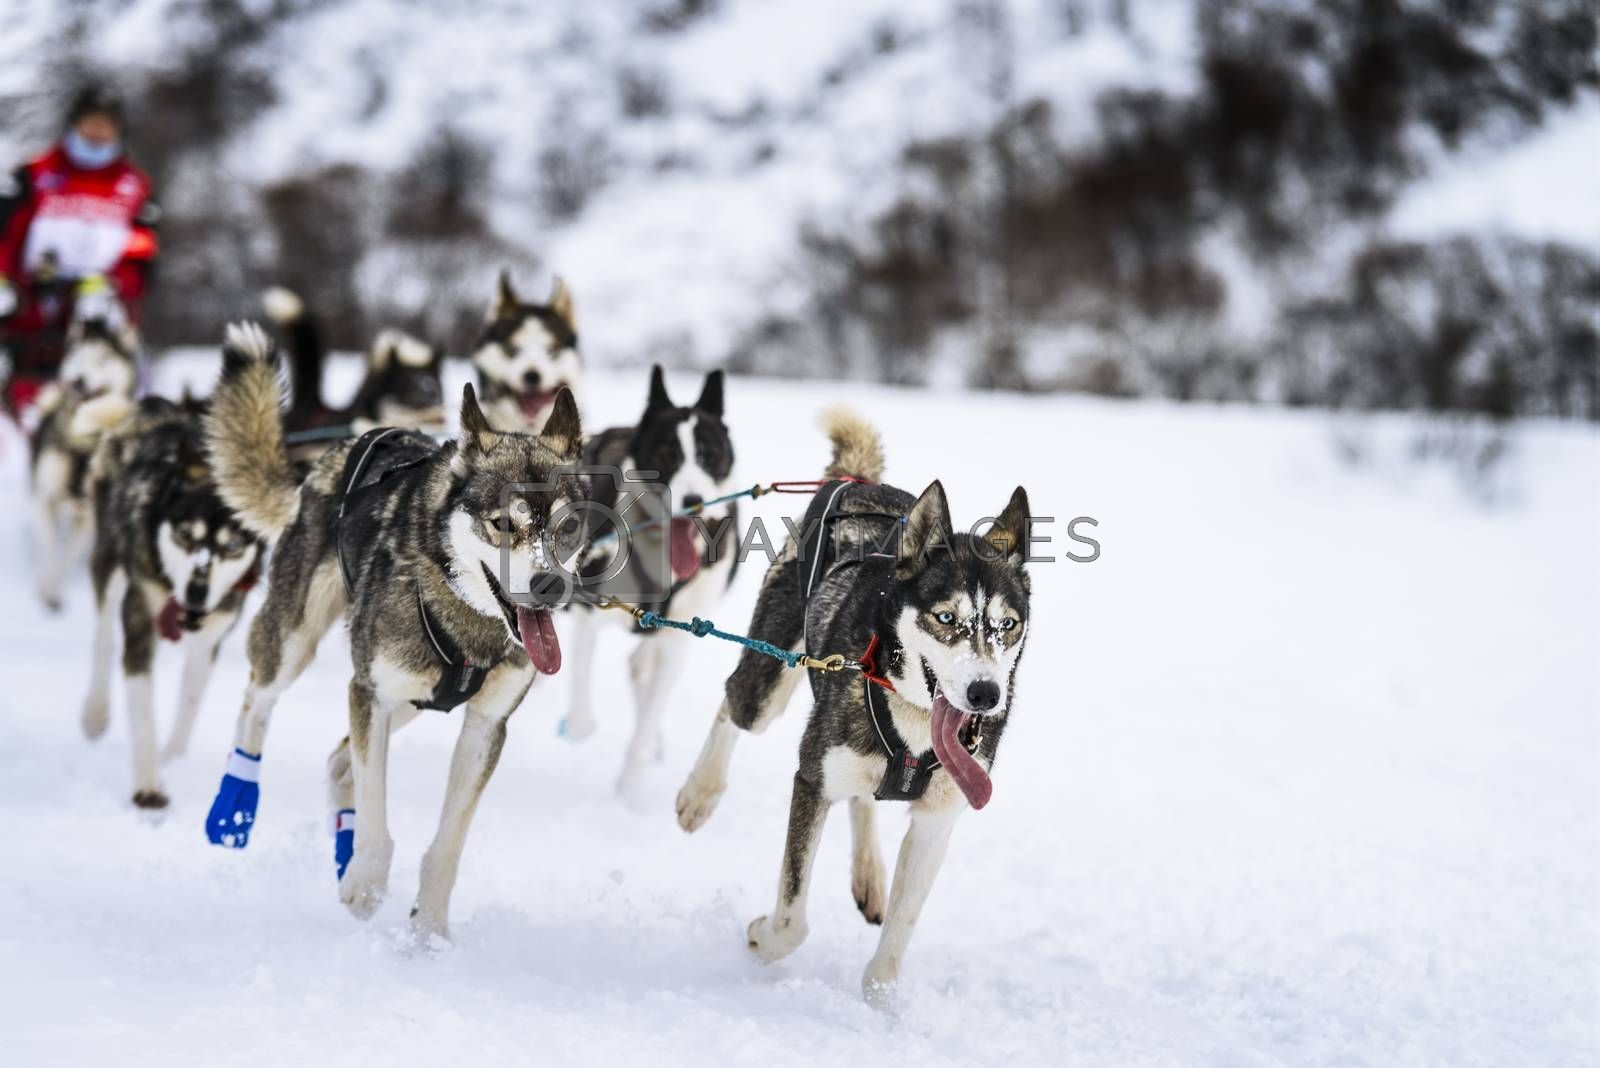 Royalty free image of Sledge dogs in speed racing by ventdusud